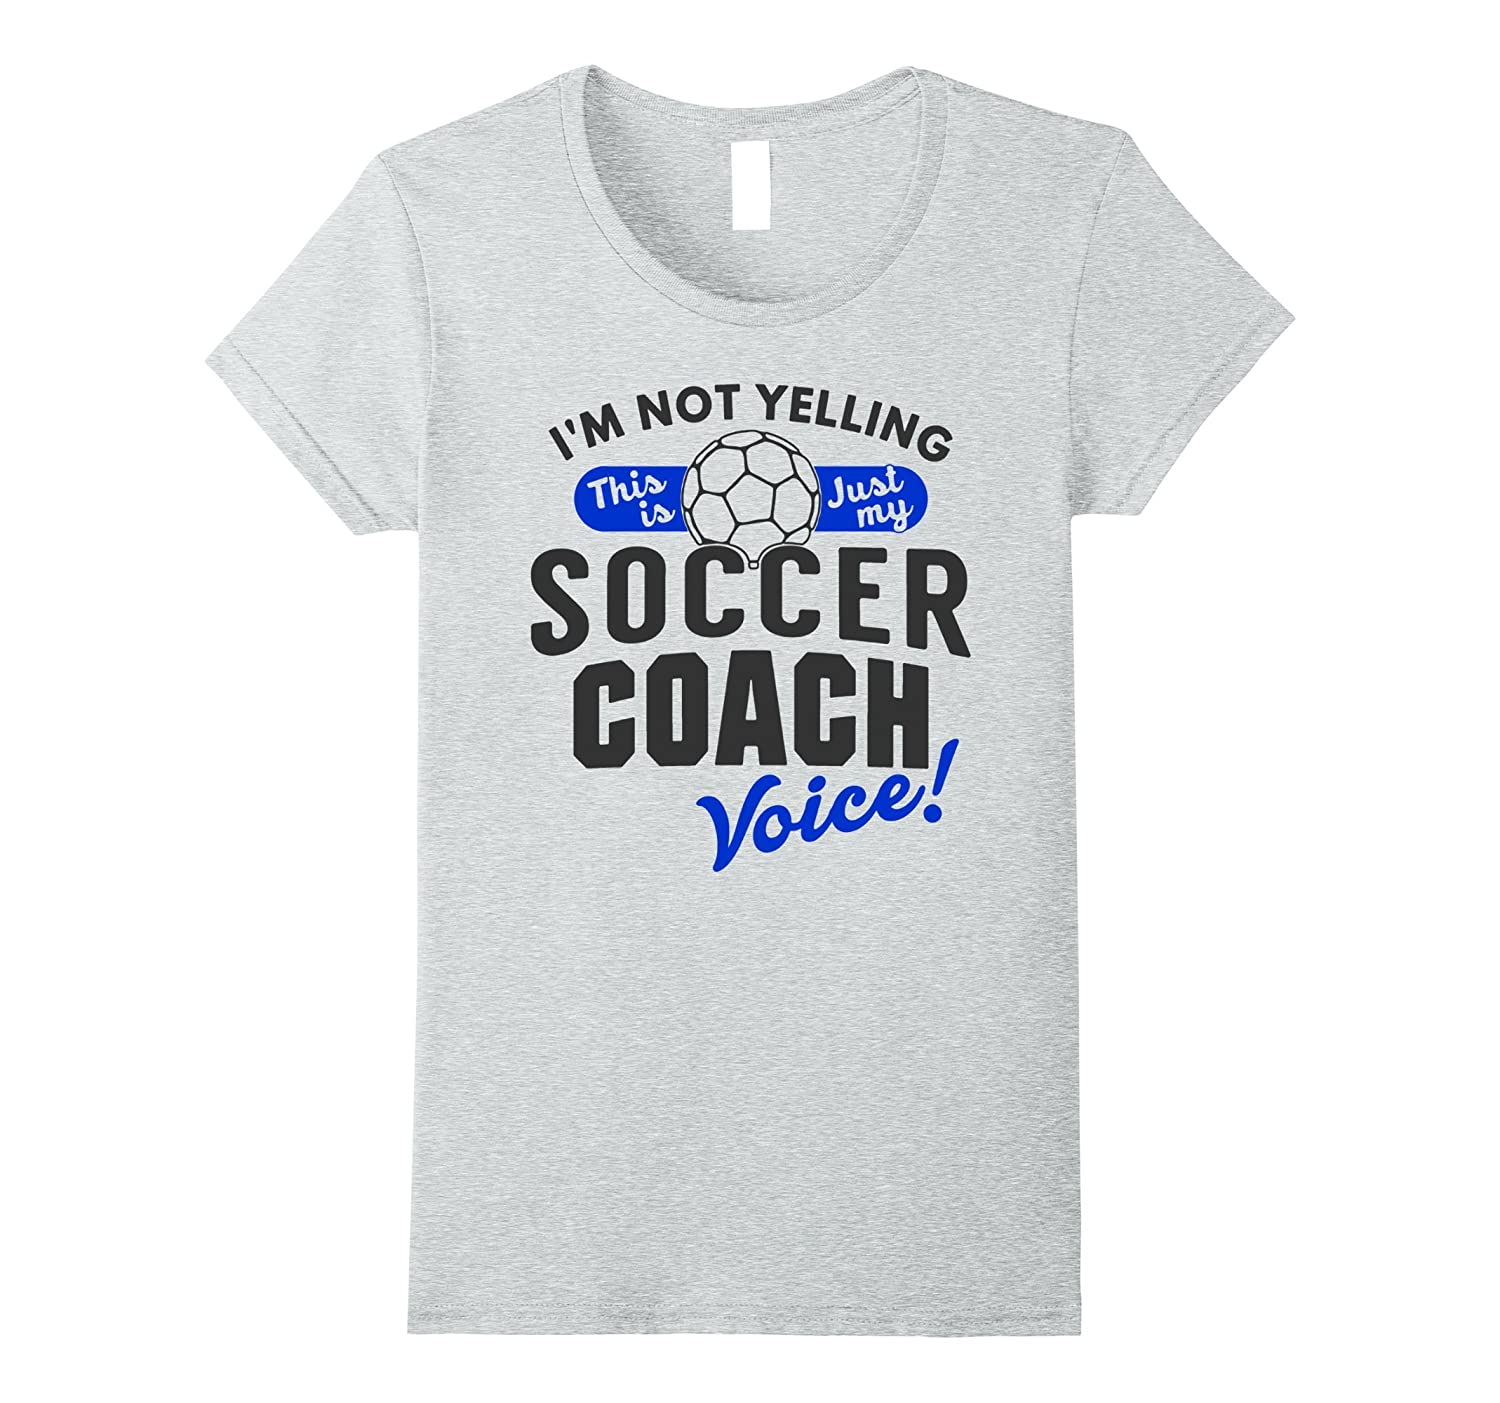 4a20db31 Funny Soccer Slogans For T Shirts – EDGE Engineering and Consulting ...